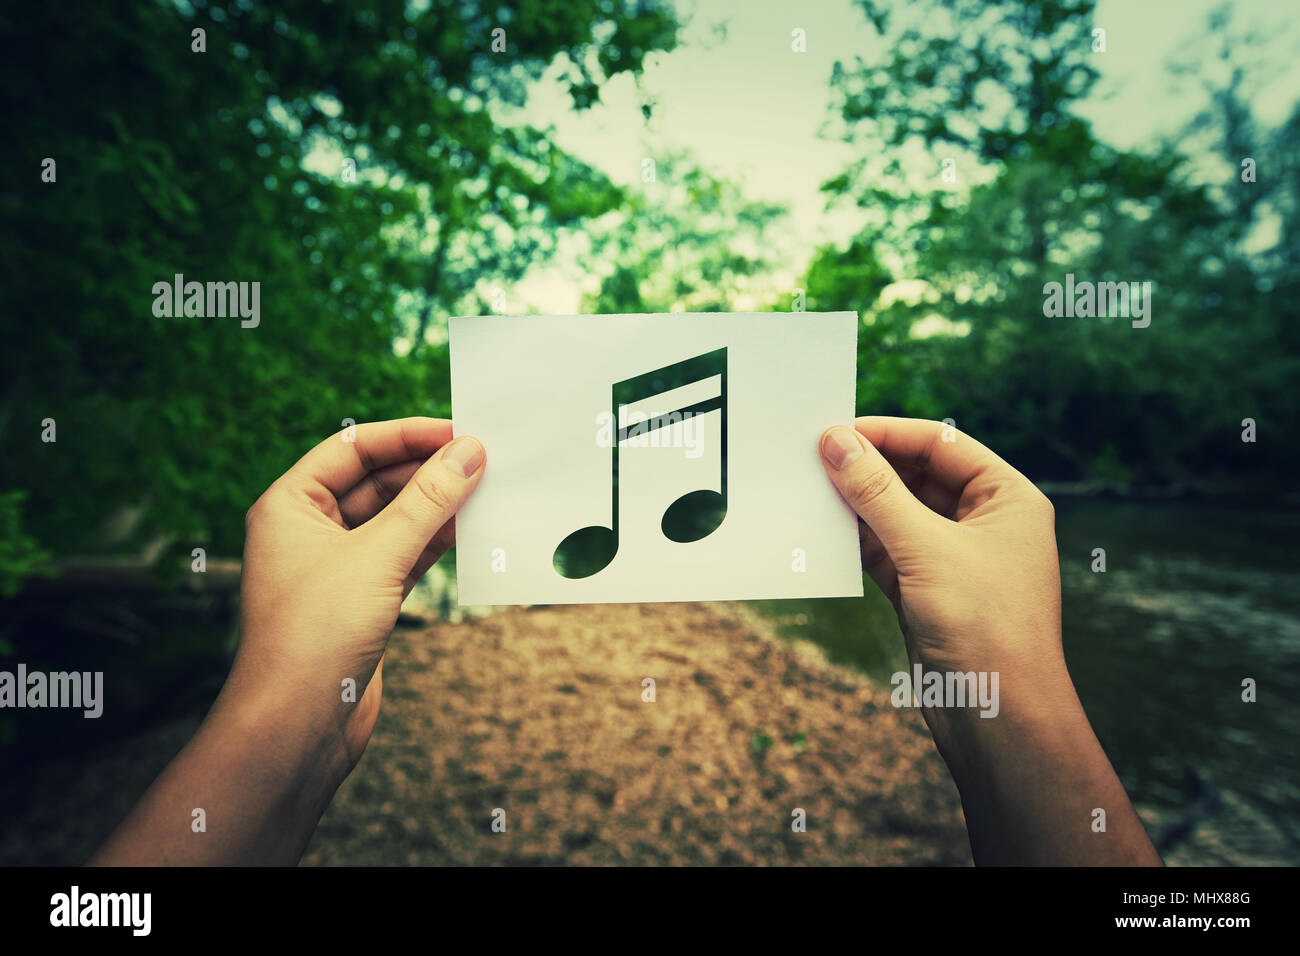 Woman Hands Holding A Paper Sheet With Music Note Inside In The